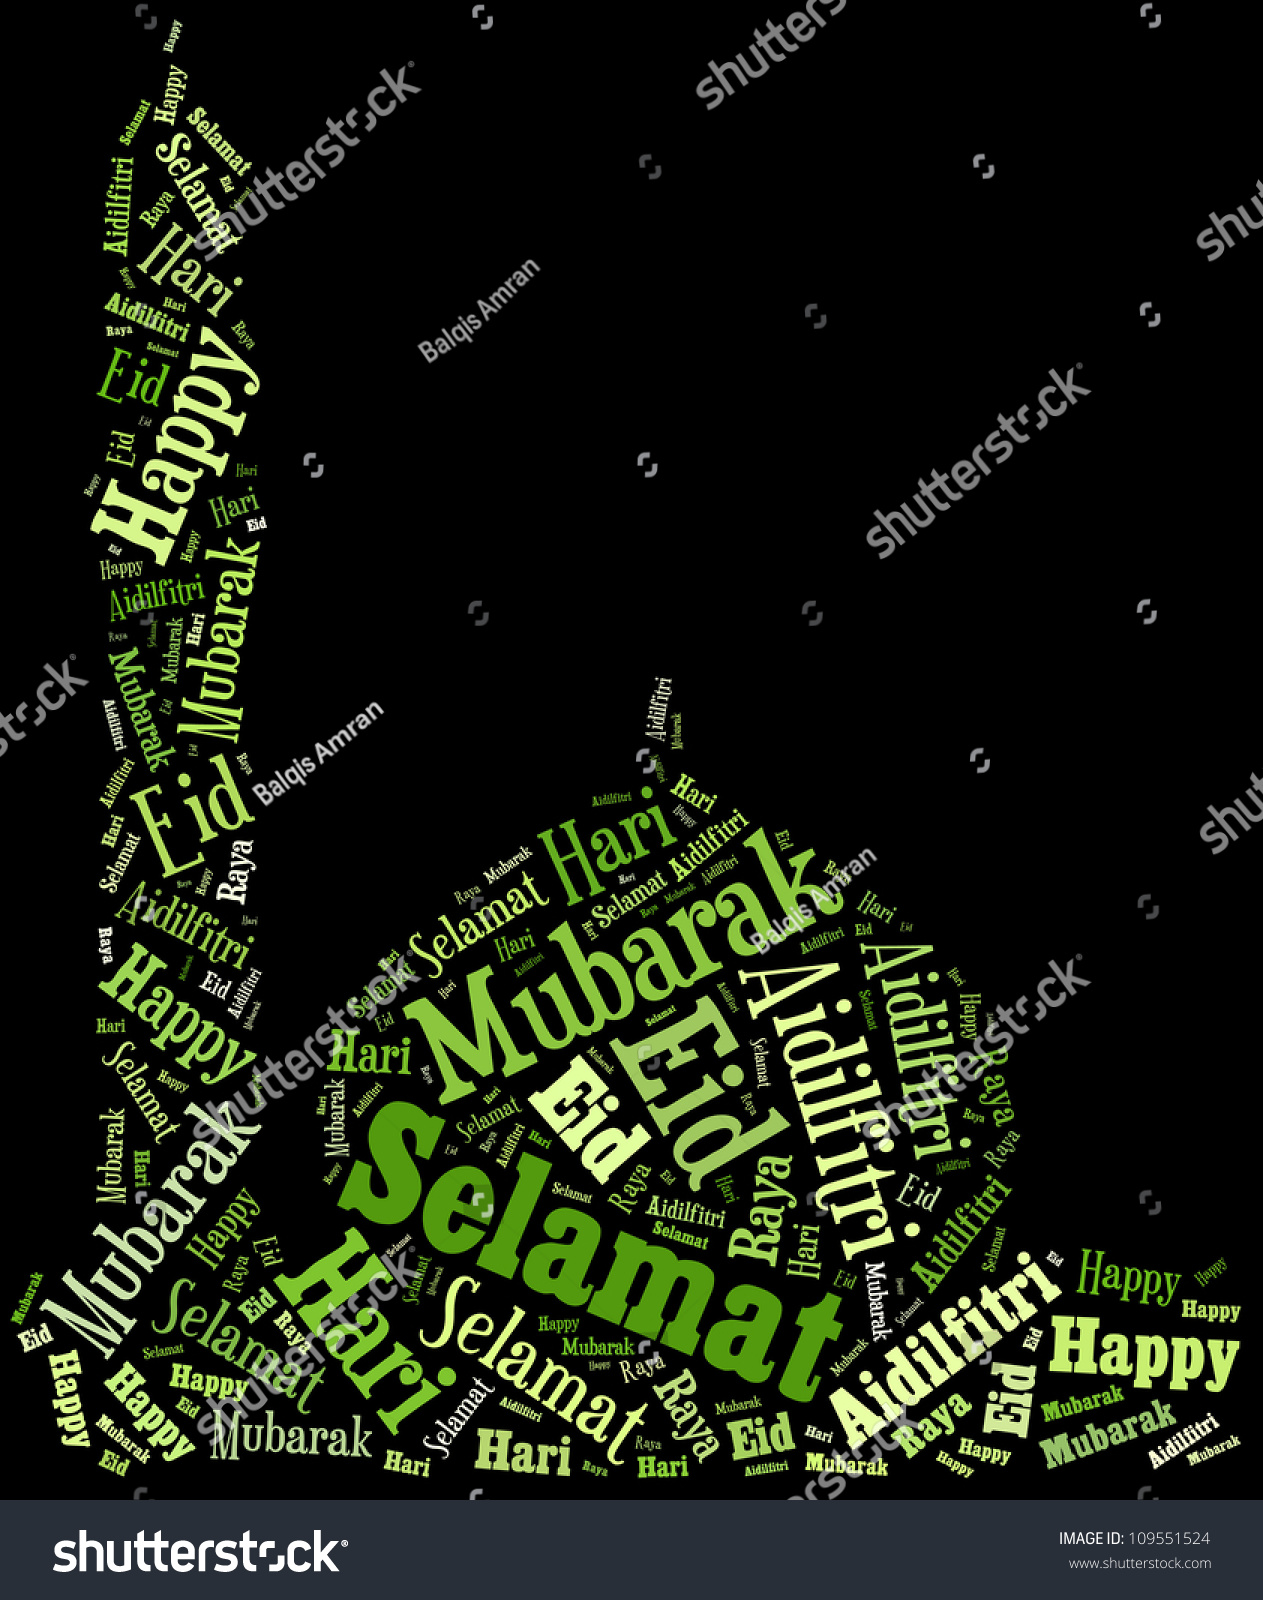 Stock Photo Info Text Eid Mubarak Greetings Composed In Mosque Shape Concept Black Background Shutterstock Hari Raya